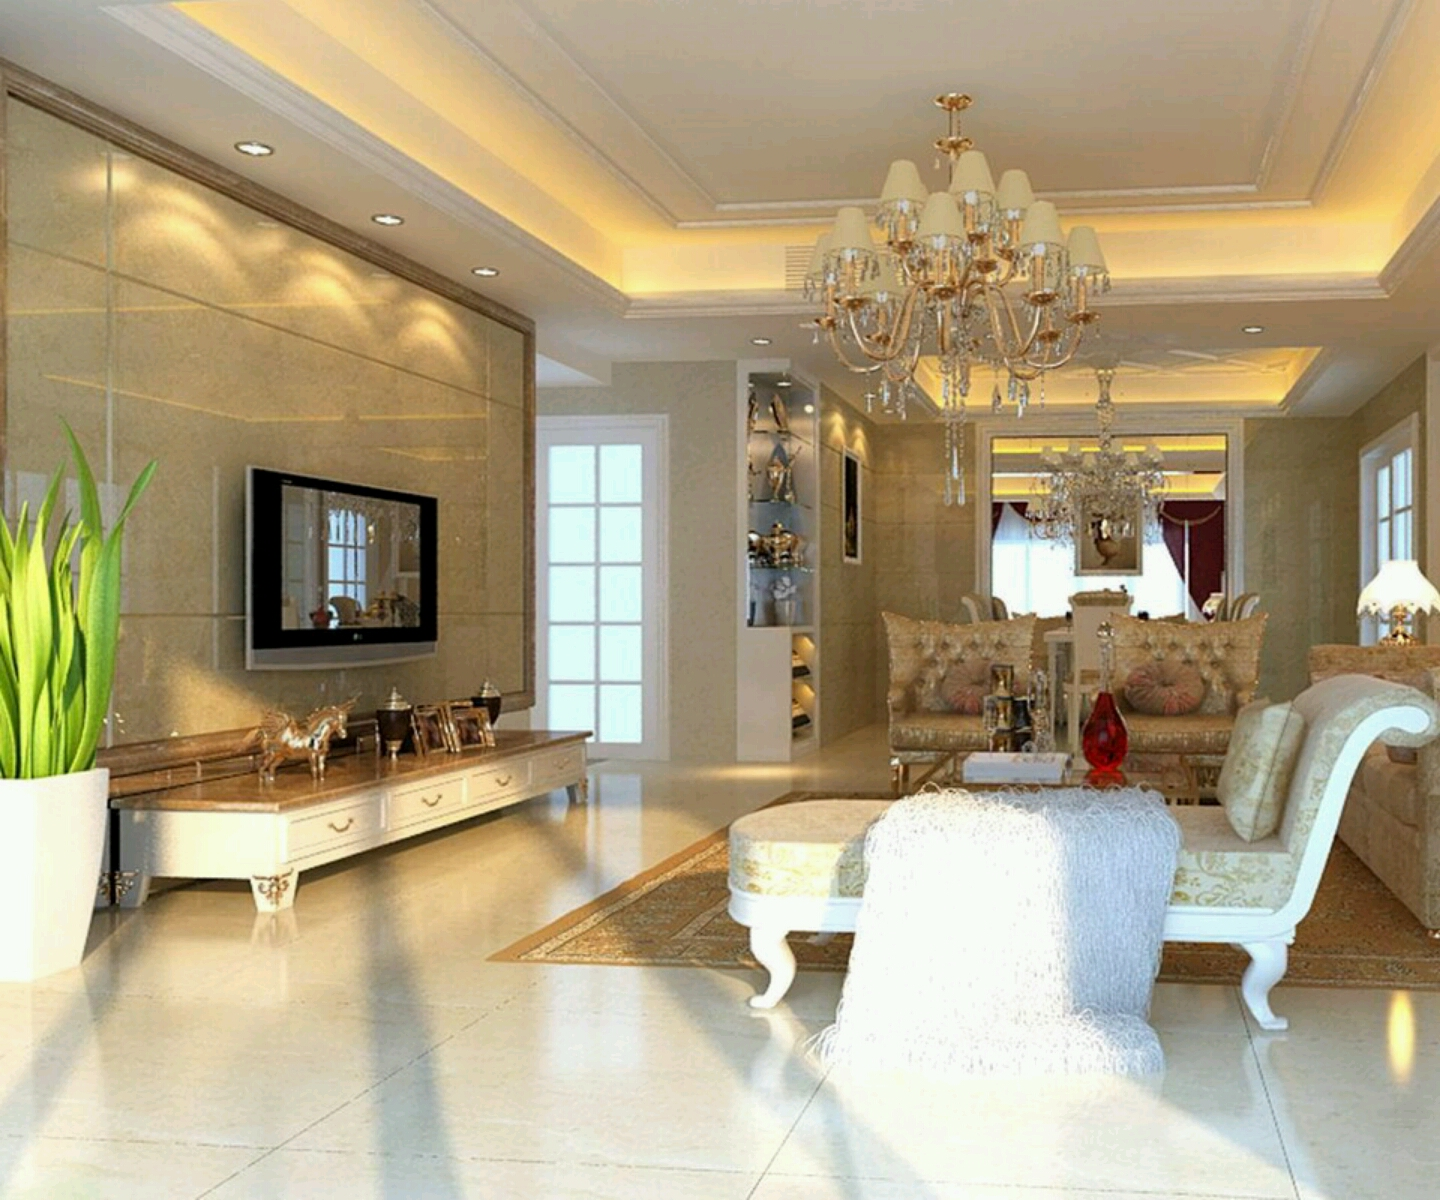 luxury living room interior designs - The Best Home Design